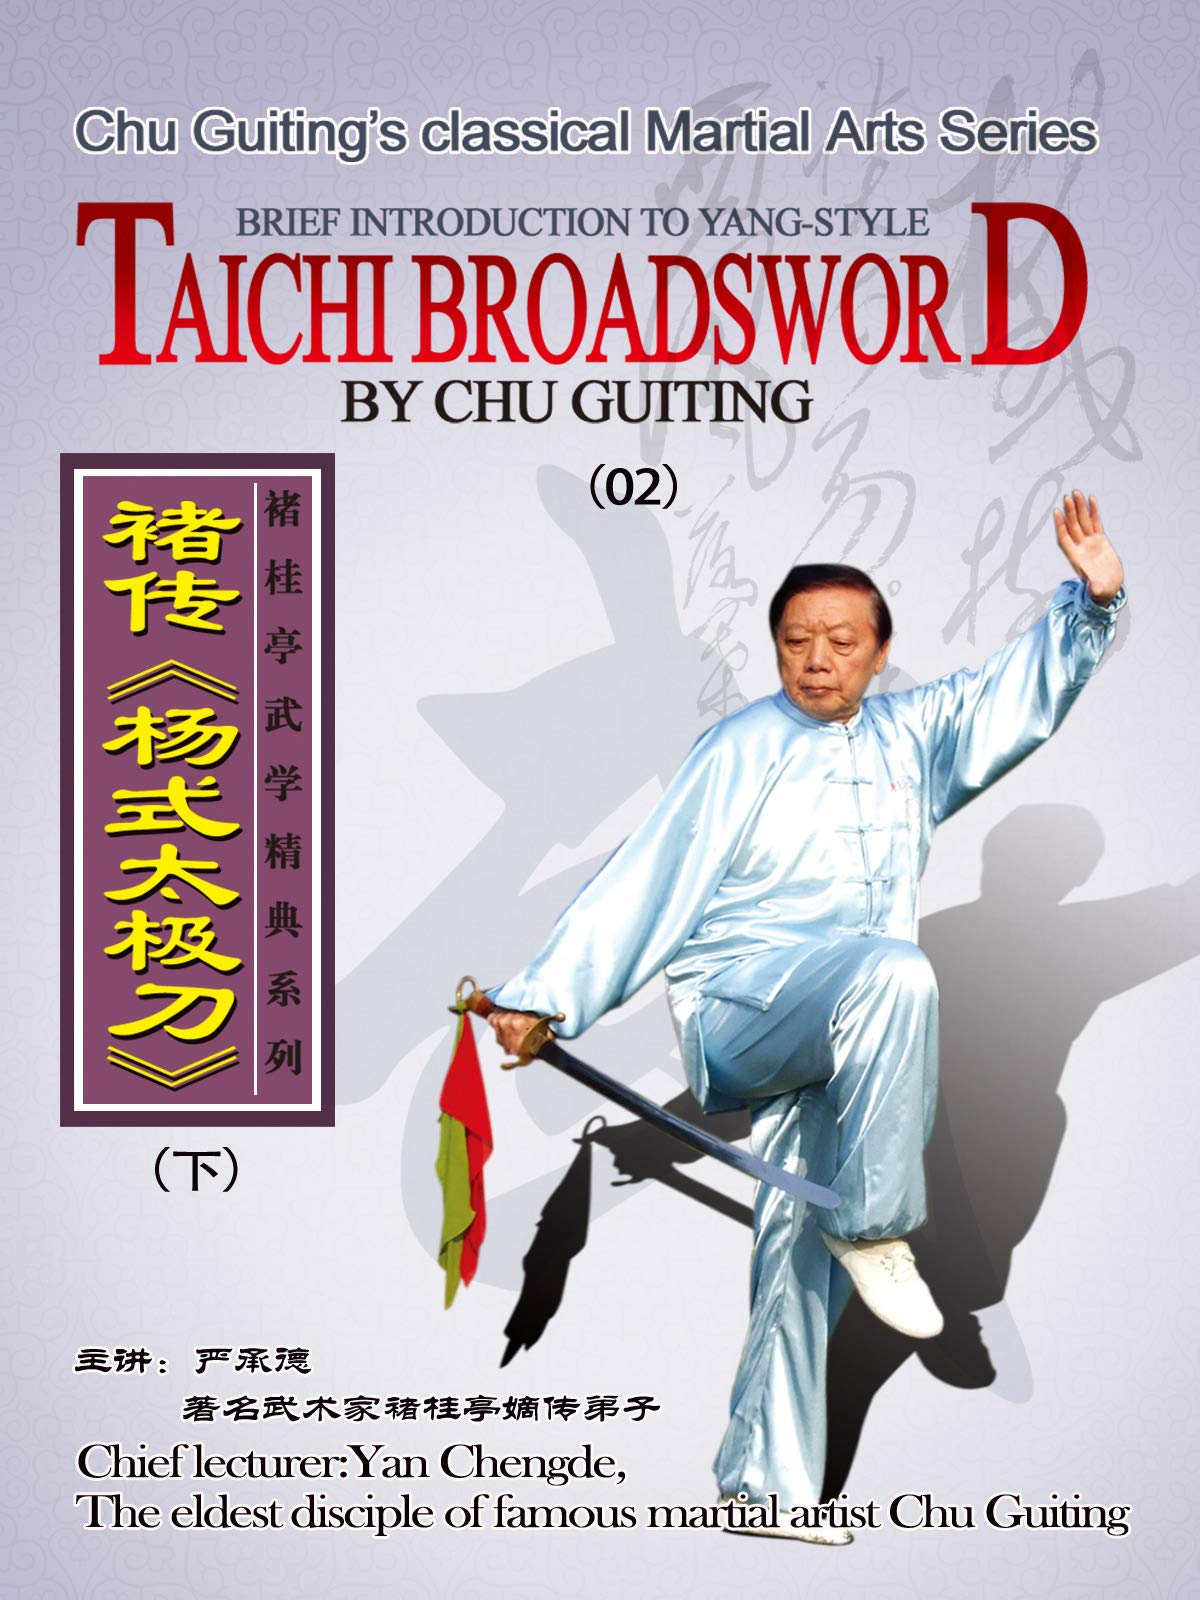 Chu Guiting's classical Martial Arts Series-Brief Introduction to Yang-Taichi Broadsword by Chu Guiting 02